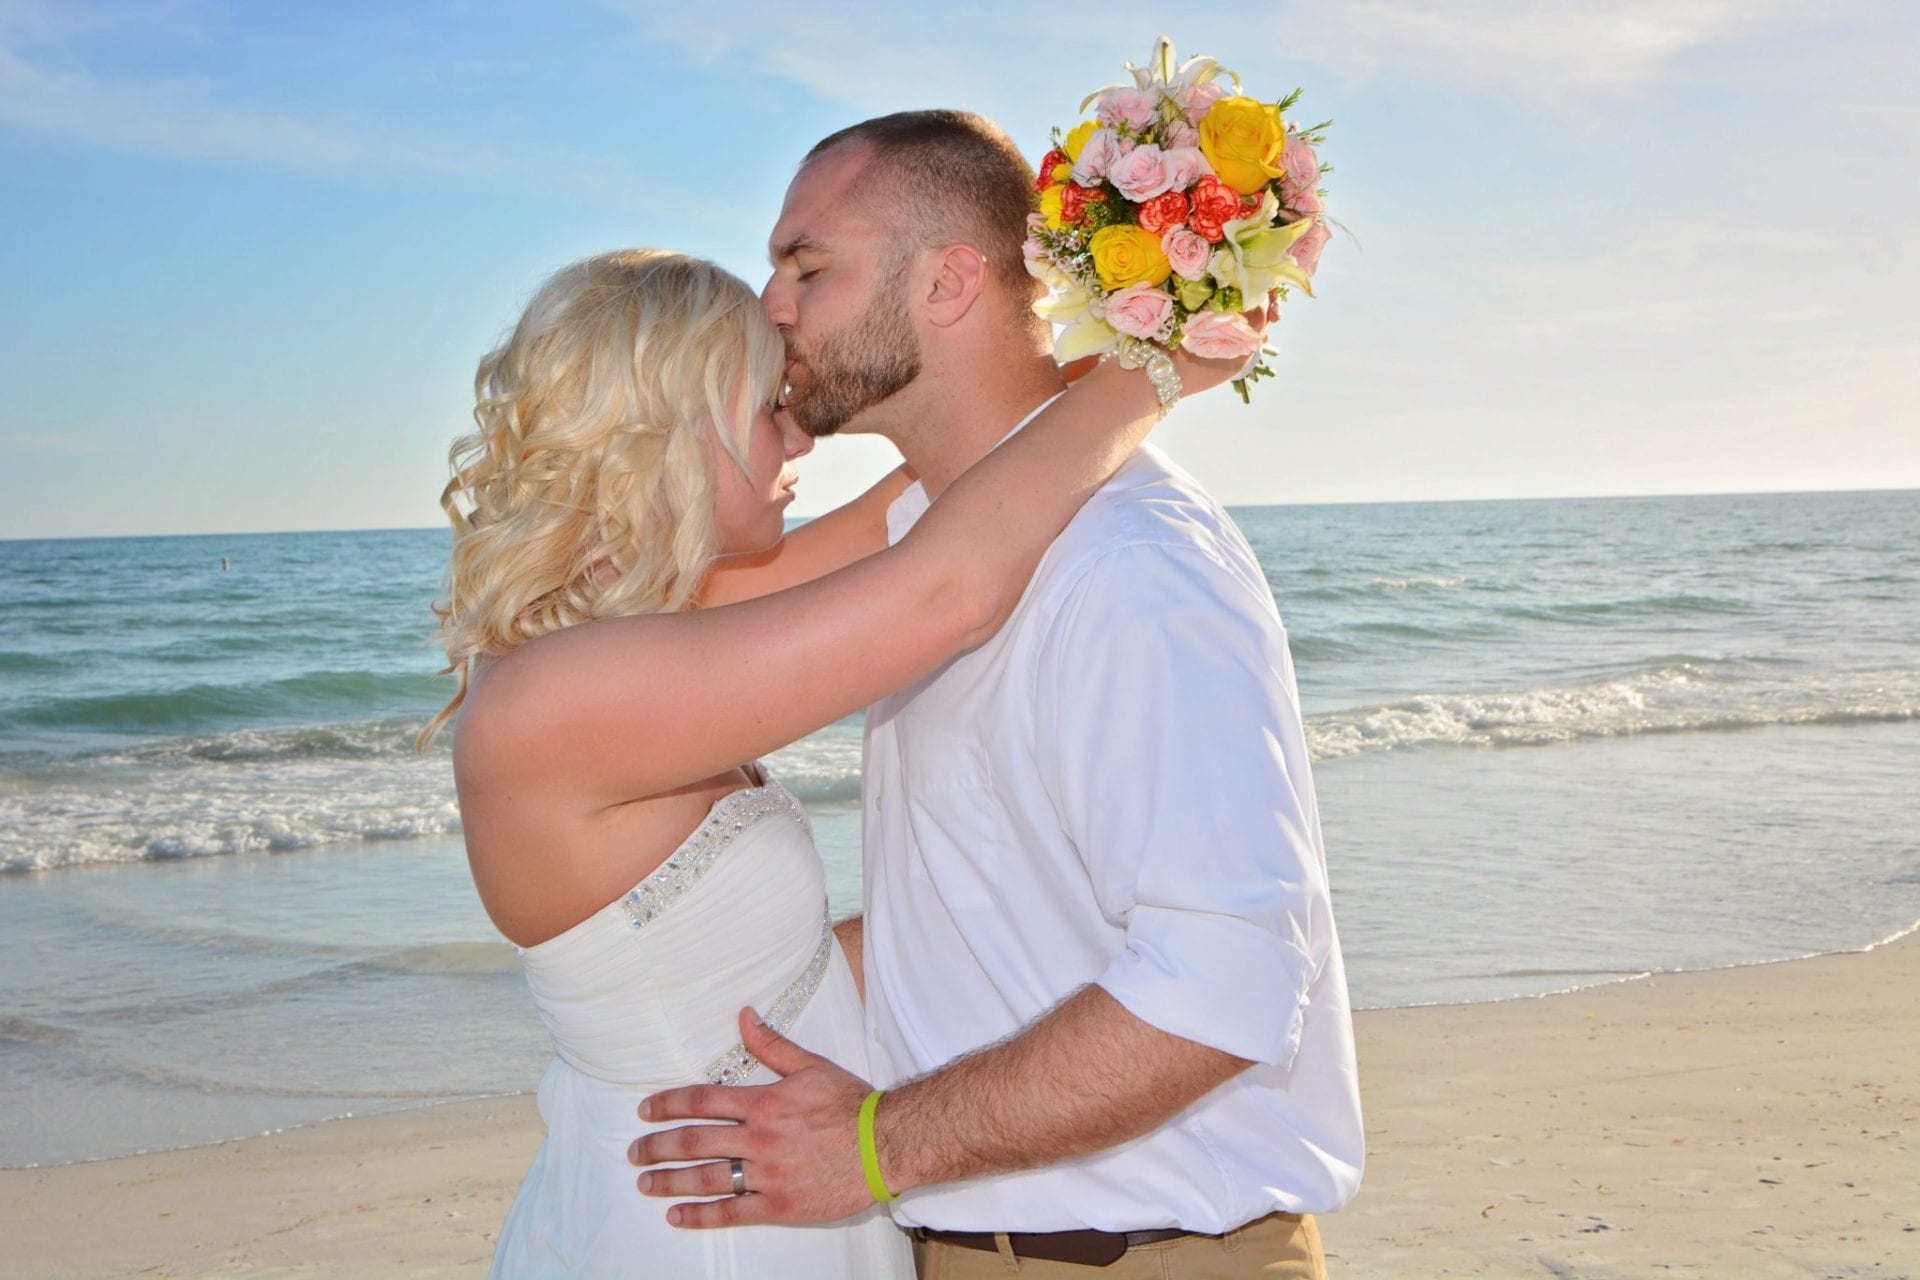 Our Siesta Key beach Weddings include these beautiful photographs of a groom kissing the brides forehead.